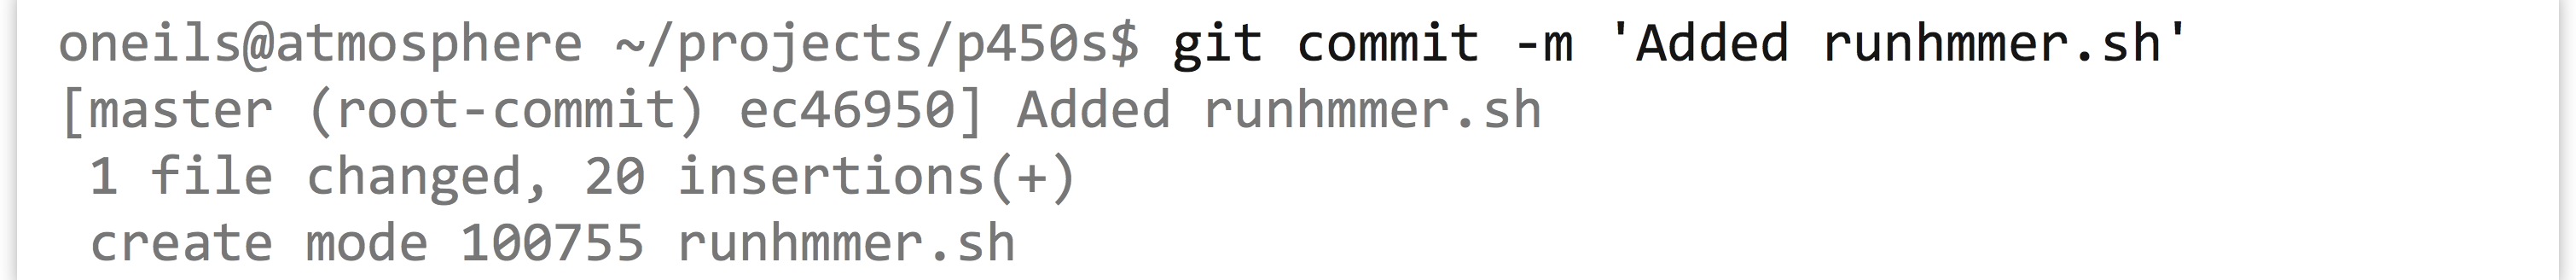 I.12_29_unix_159_7_git_commit